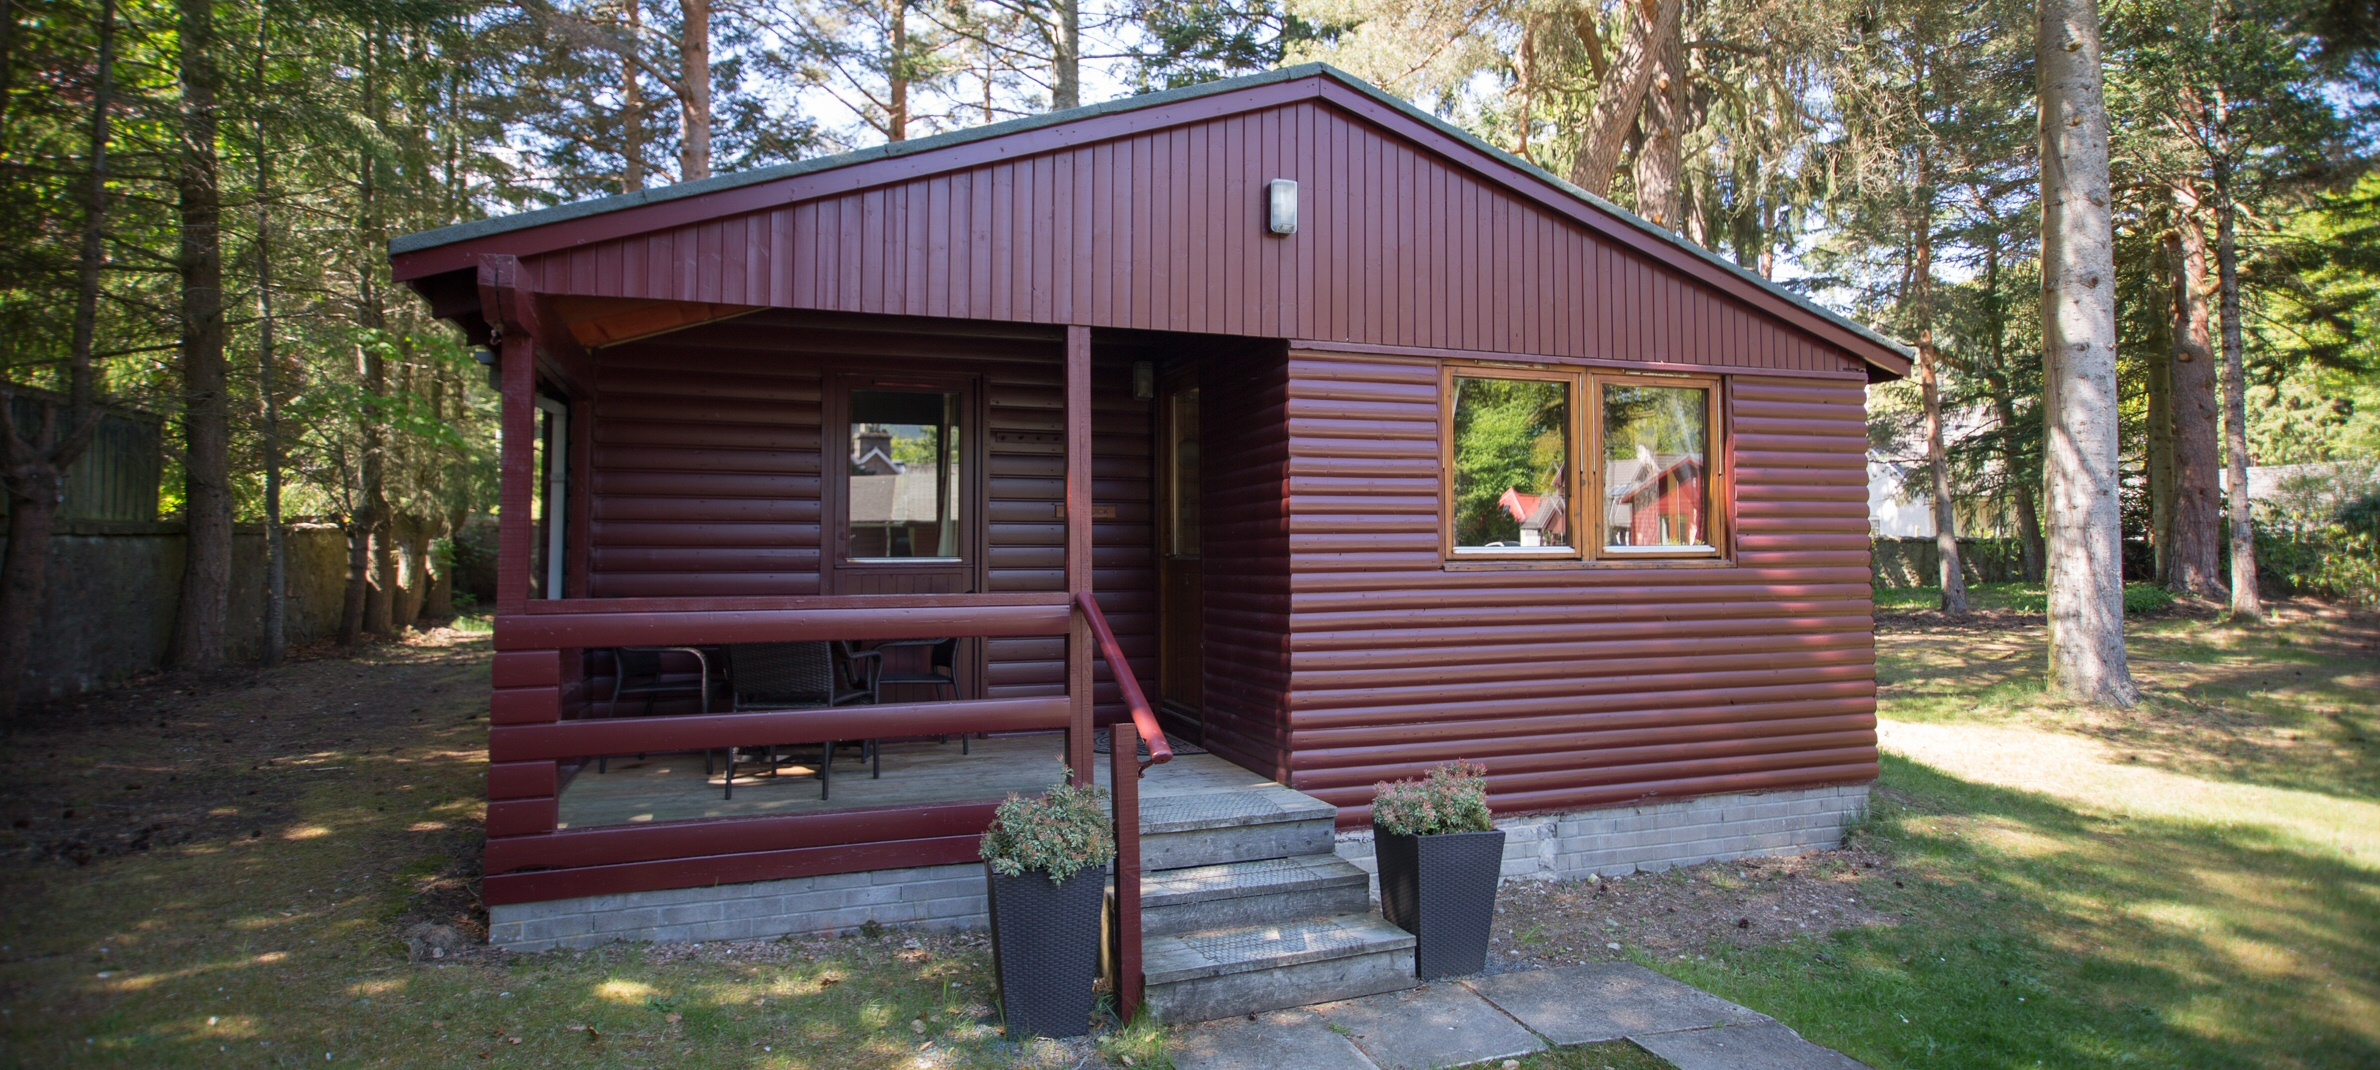 <h2>7 self-catering lodges in the heart of Ballater and Royal Deeside - Glen Muick</h2><div class='slide-content'></div>